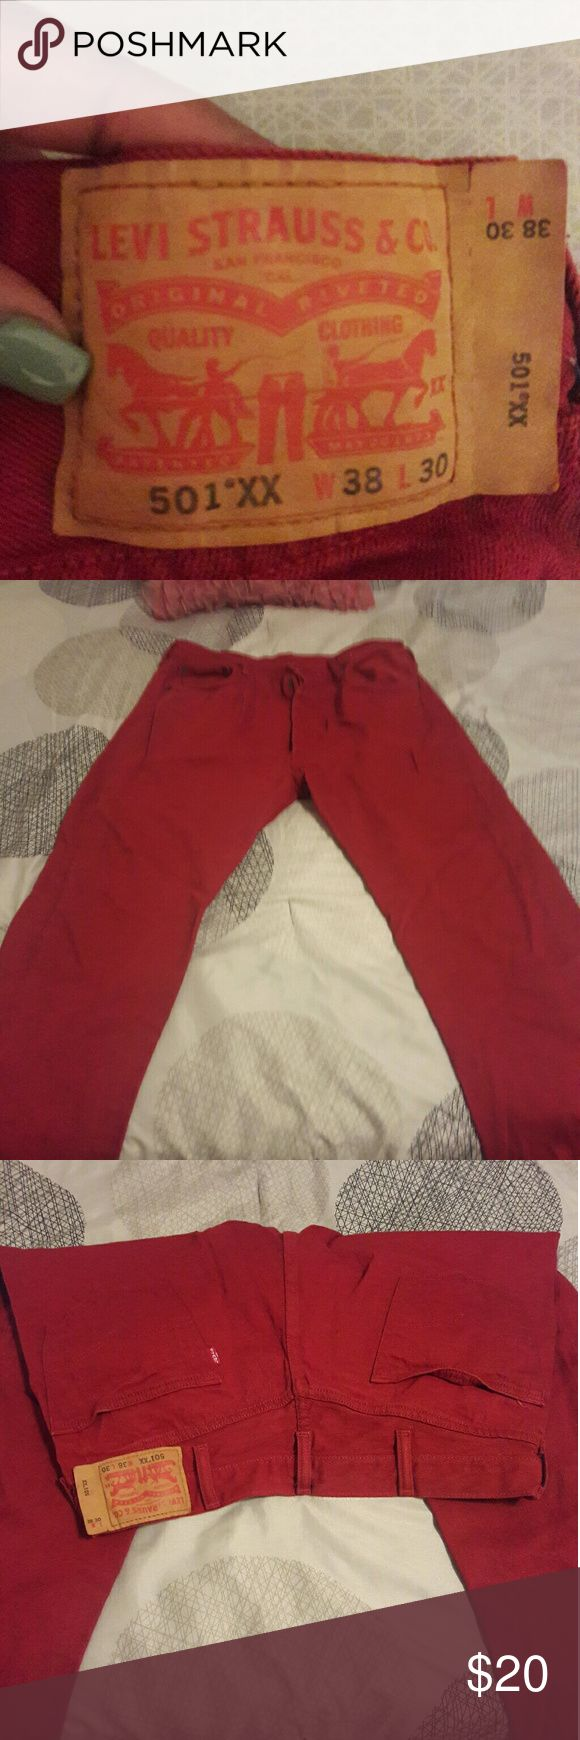 LOWEST PRICE LISTED...Mens levi jeans Gently used mens levis...size 38/30 Levi's Jeans Straight